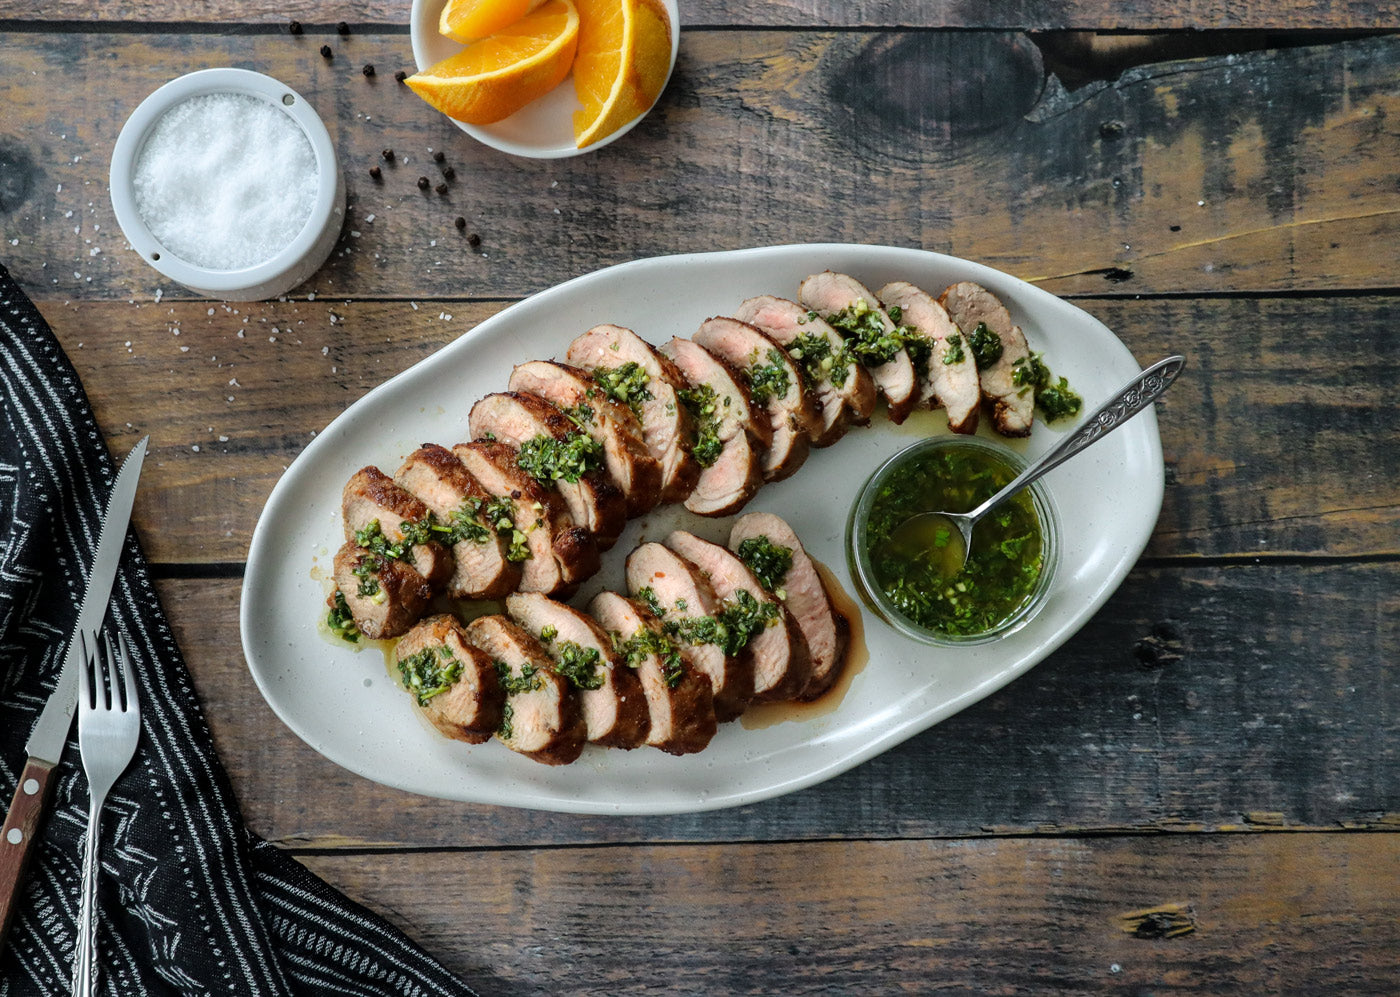 Orange and Cumin-Marinated Nagano Pork Tenderloin with Cilantro Sauce